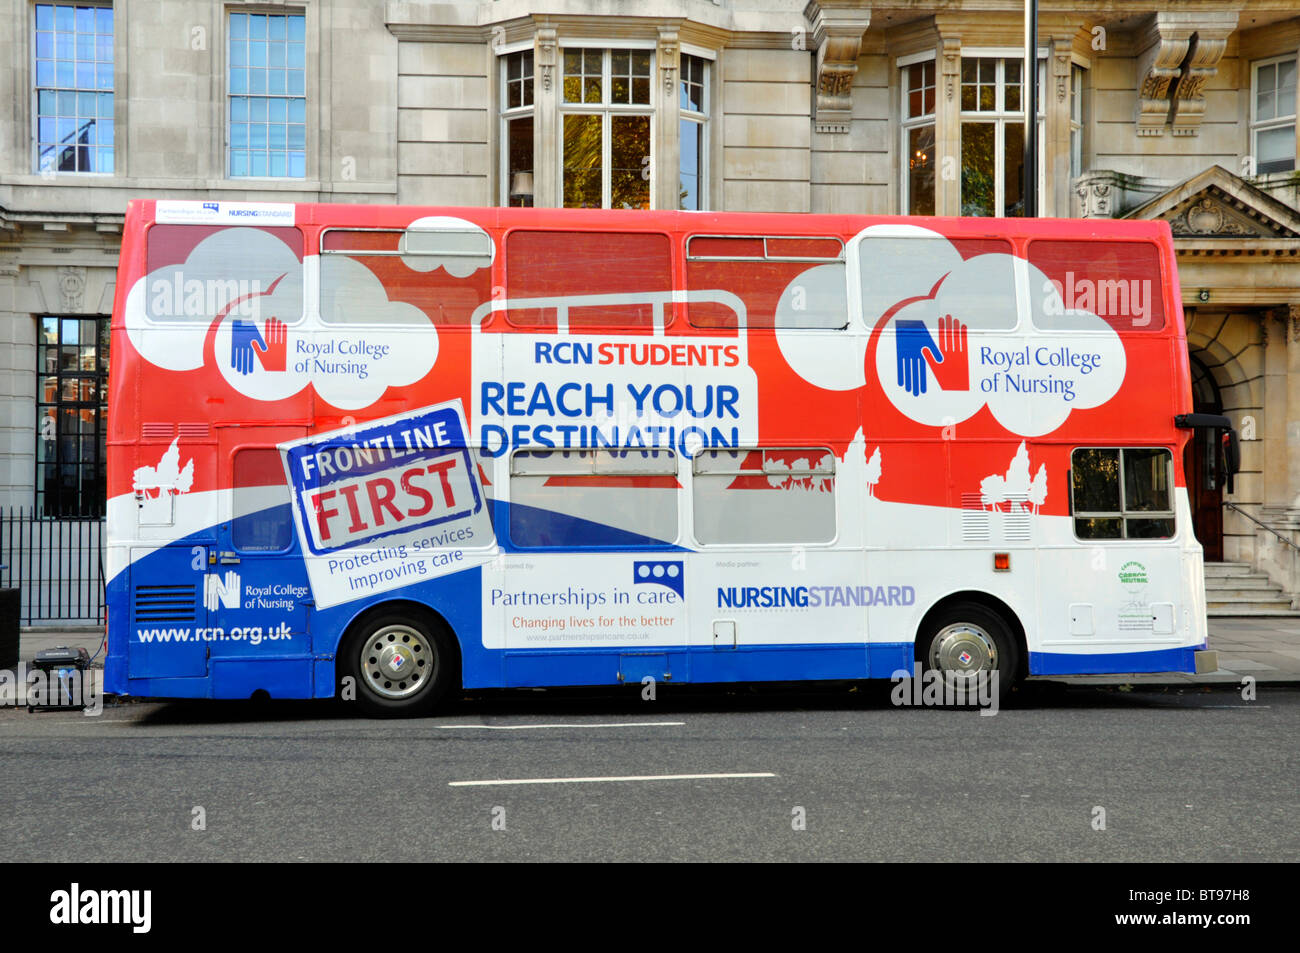 Bus advertising nurse recruitment by the Royal College of Nursing - Stock Image